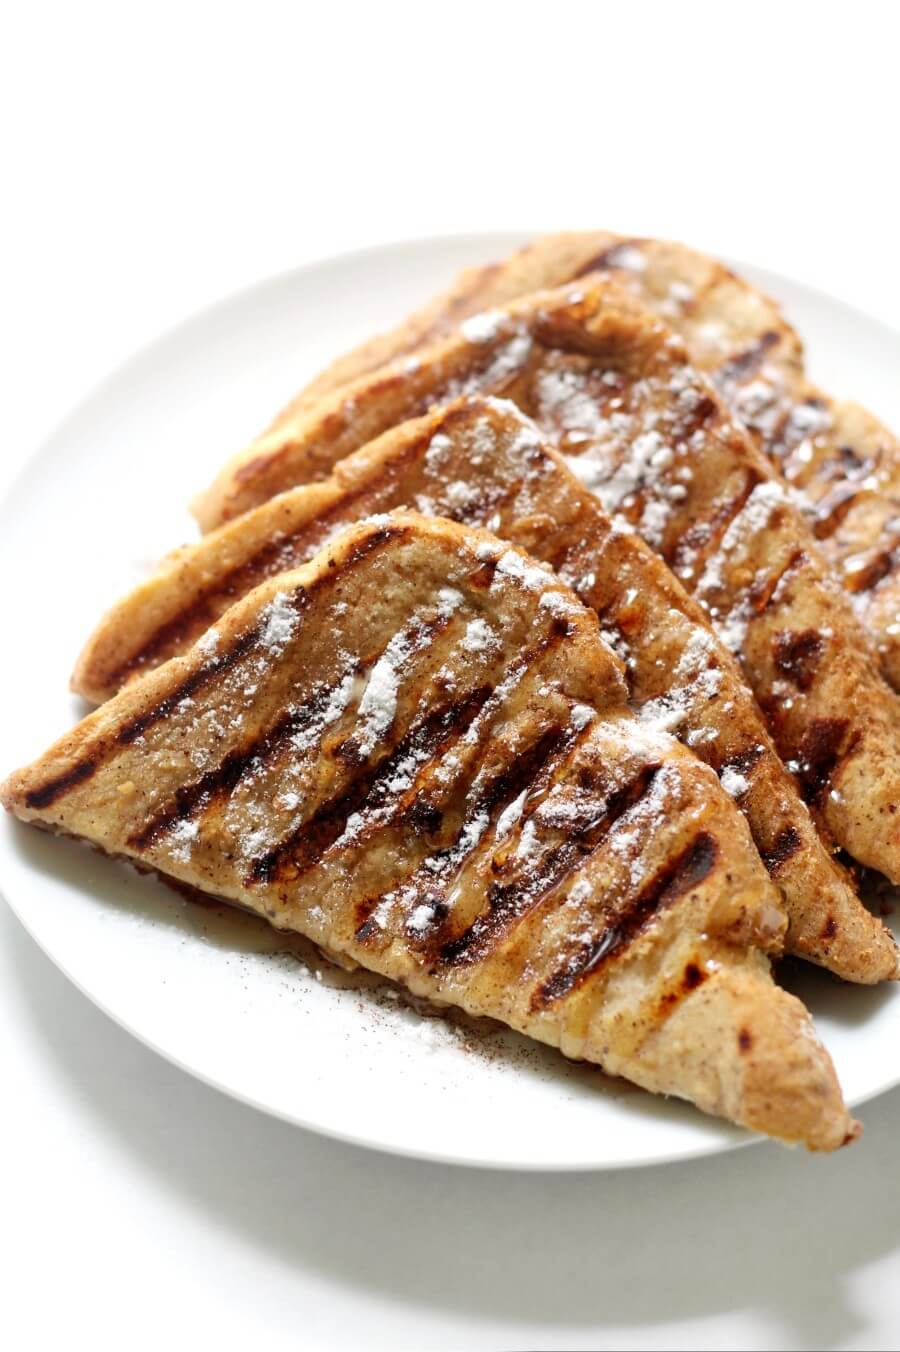 perfectly grilled gluten-free french toast